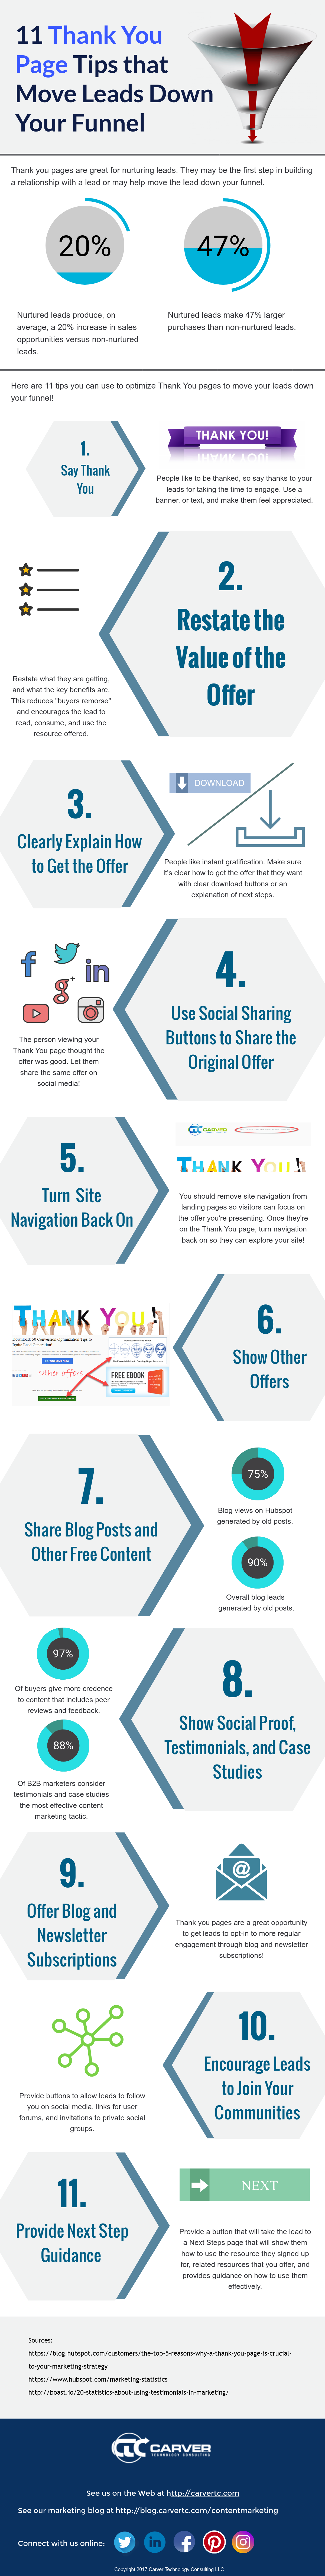 11-Thank-You-Page-Tips-that-Move-Leads-Down-Your-Funnel-HD.png